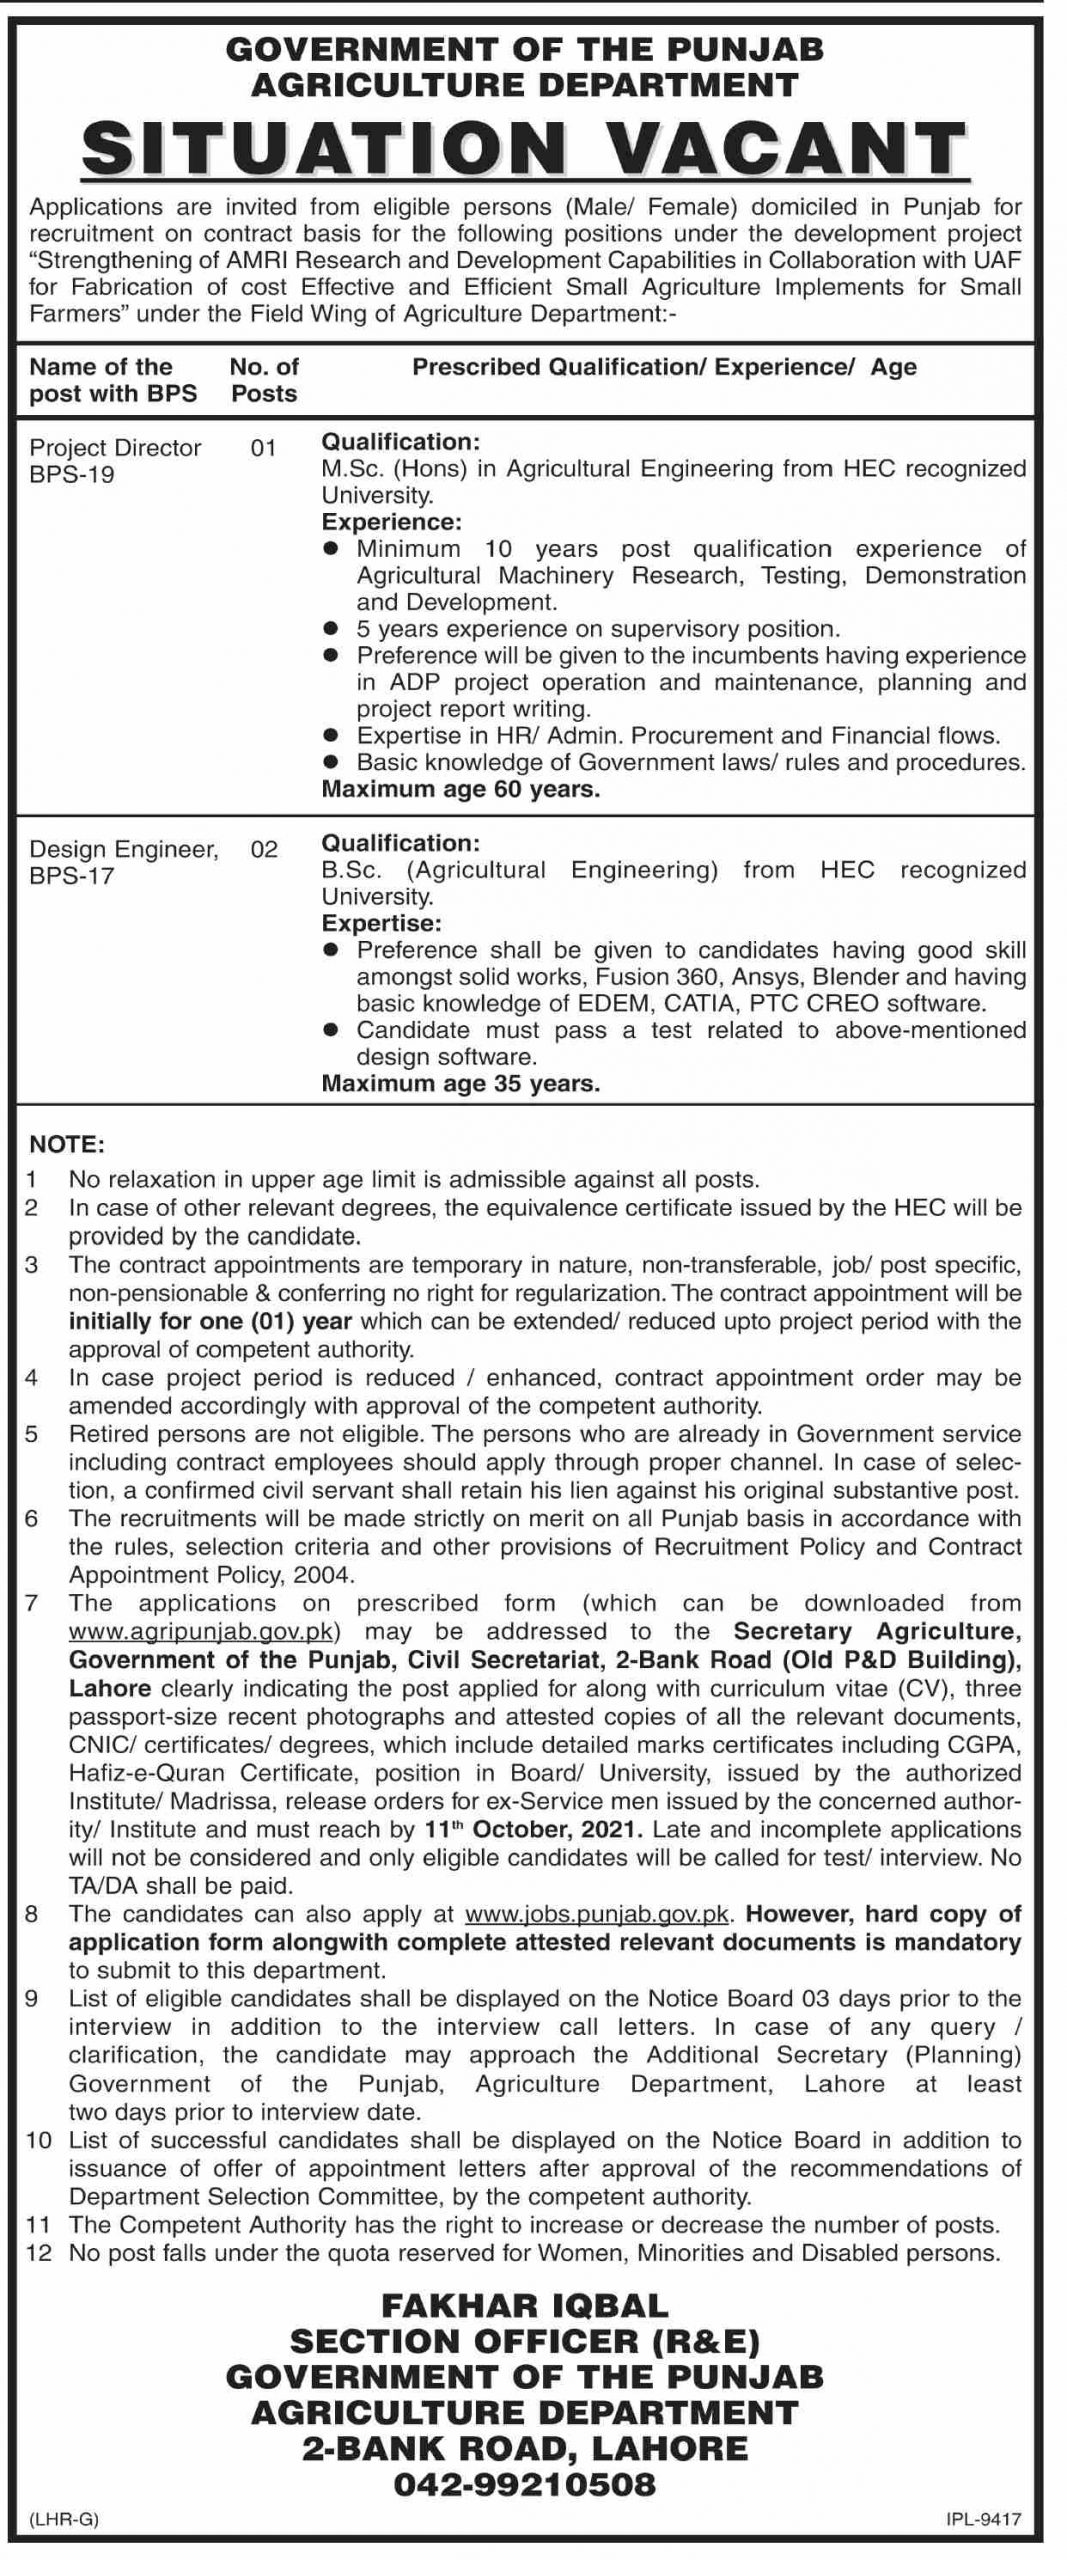 Government of the Punjab Agriculture Department Jobs September 2021